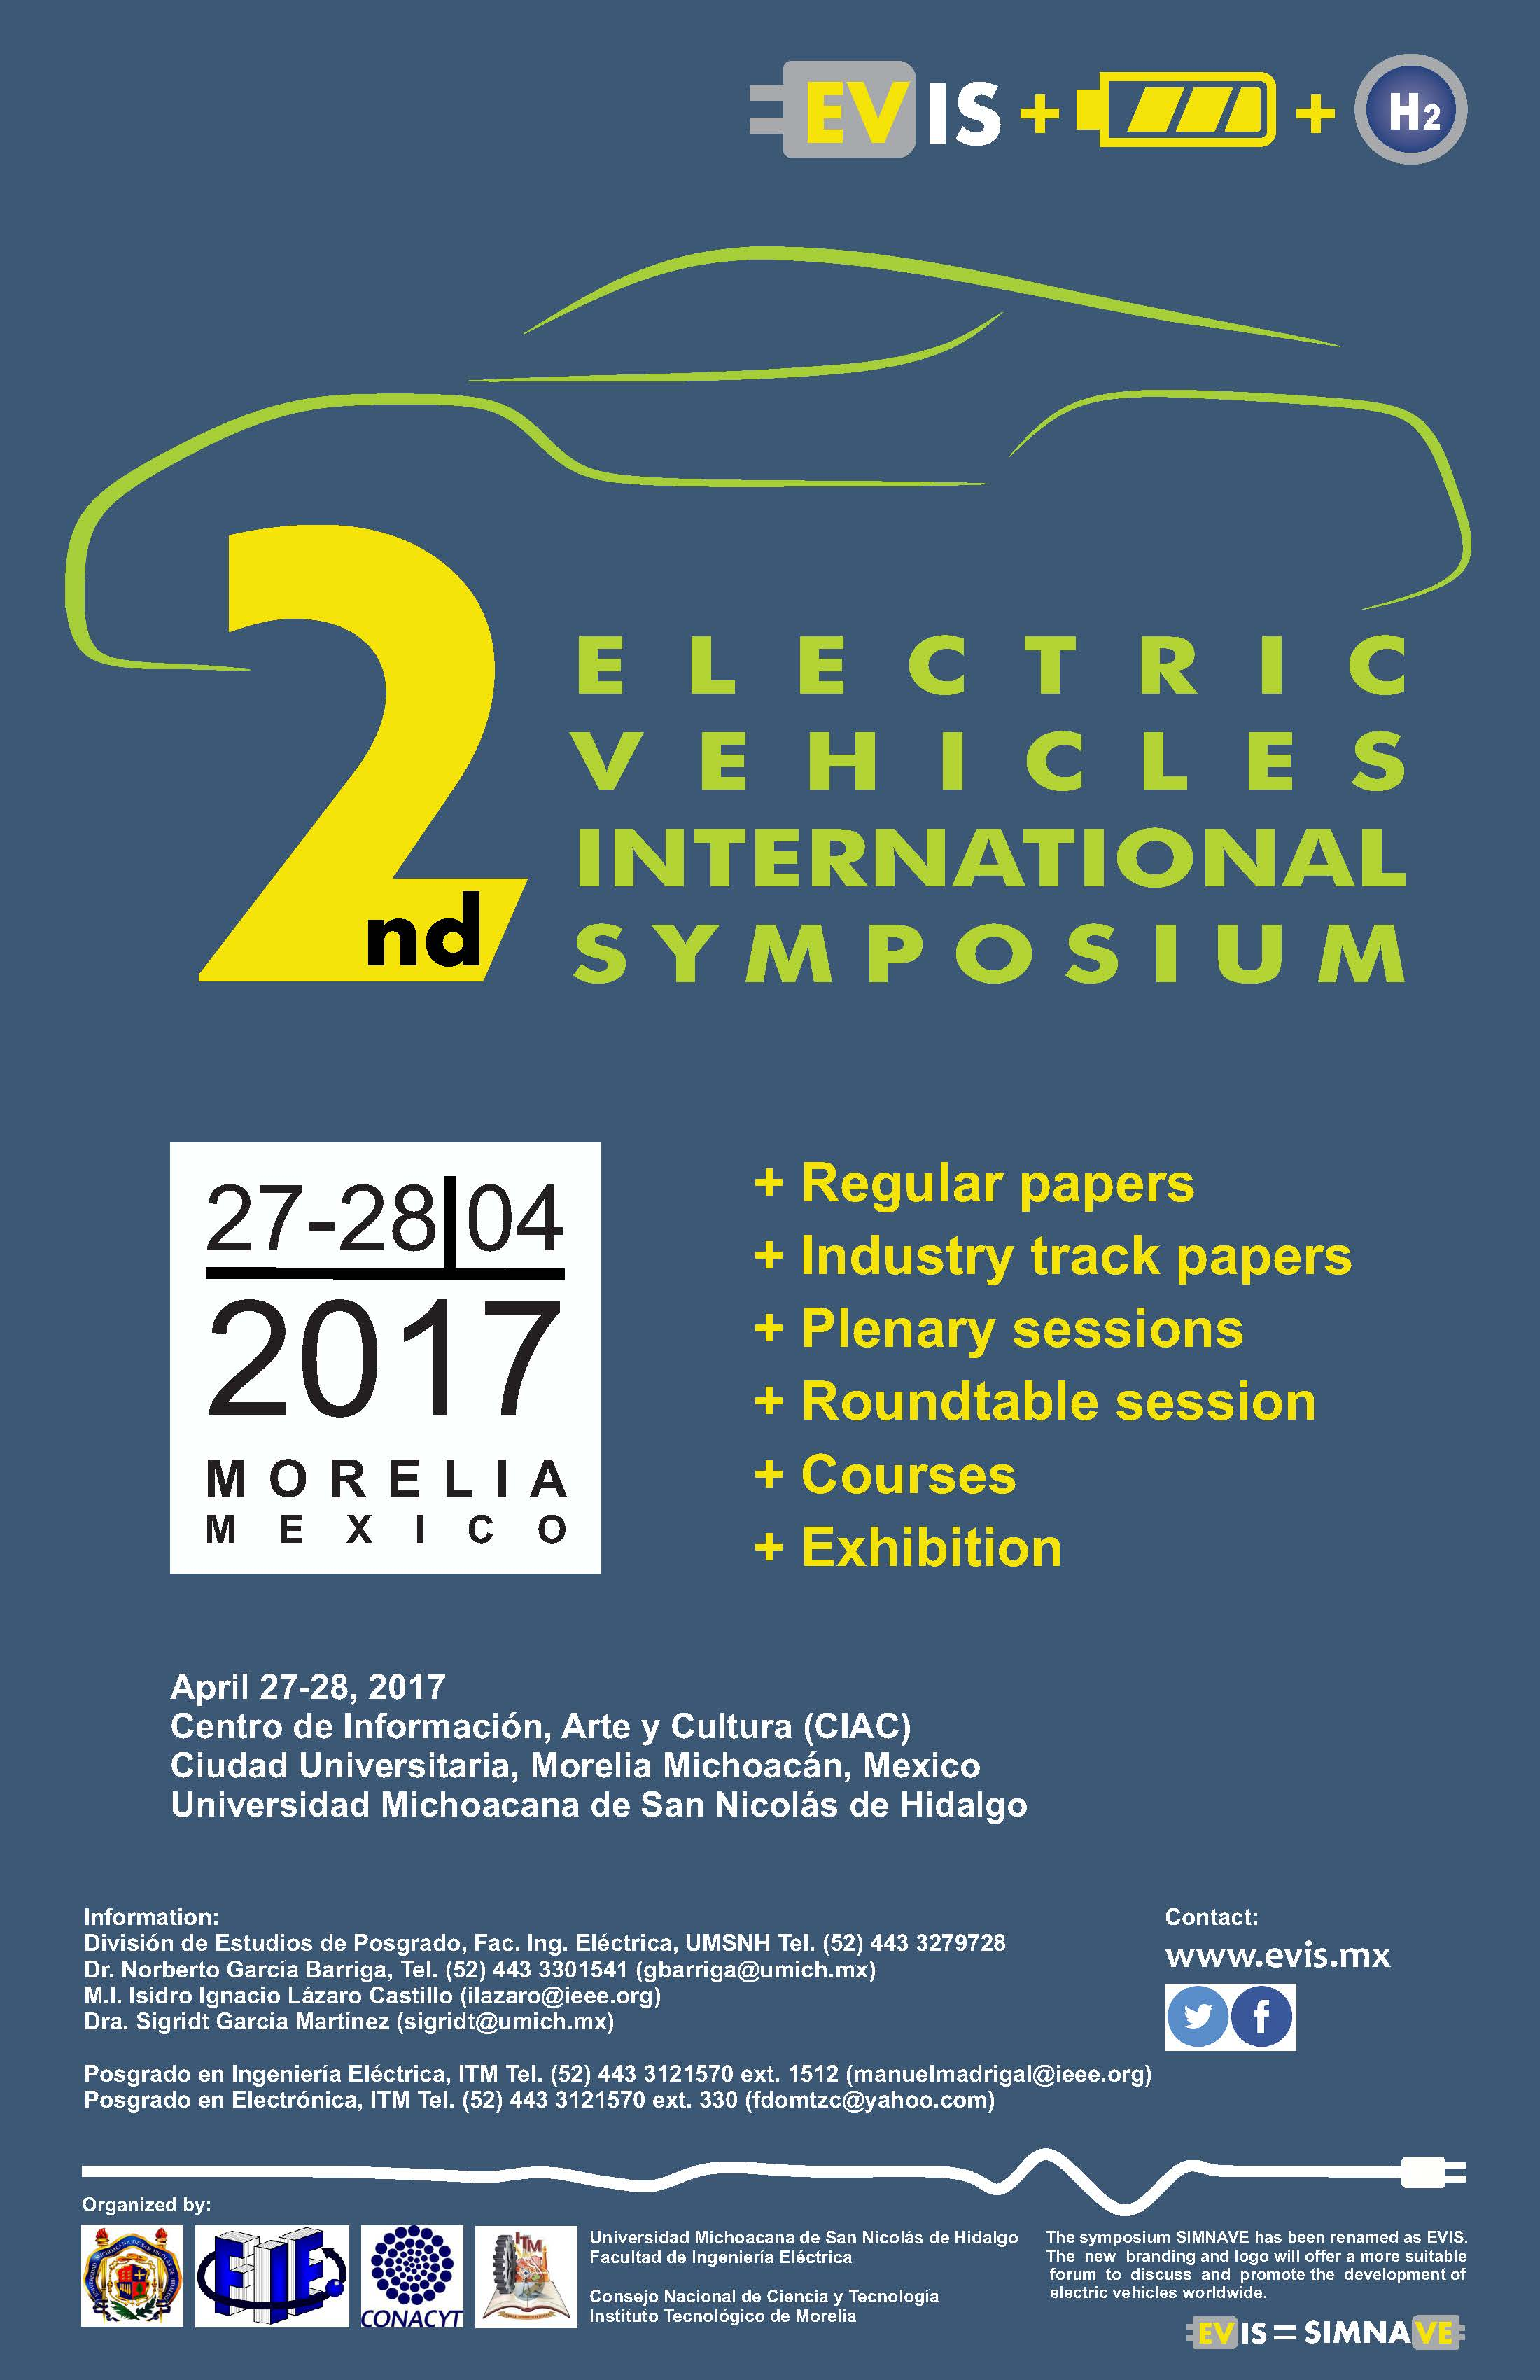 The Electric Vehicles International Symposium (EVIS)